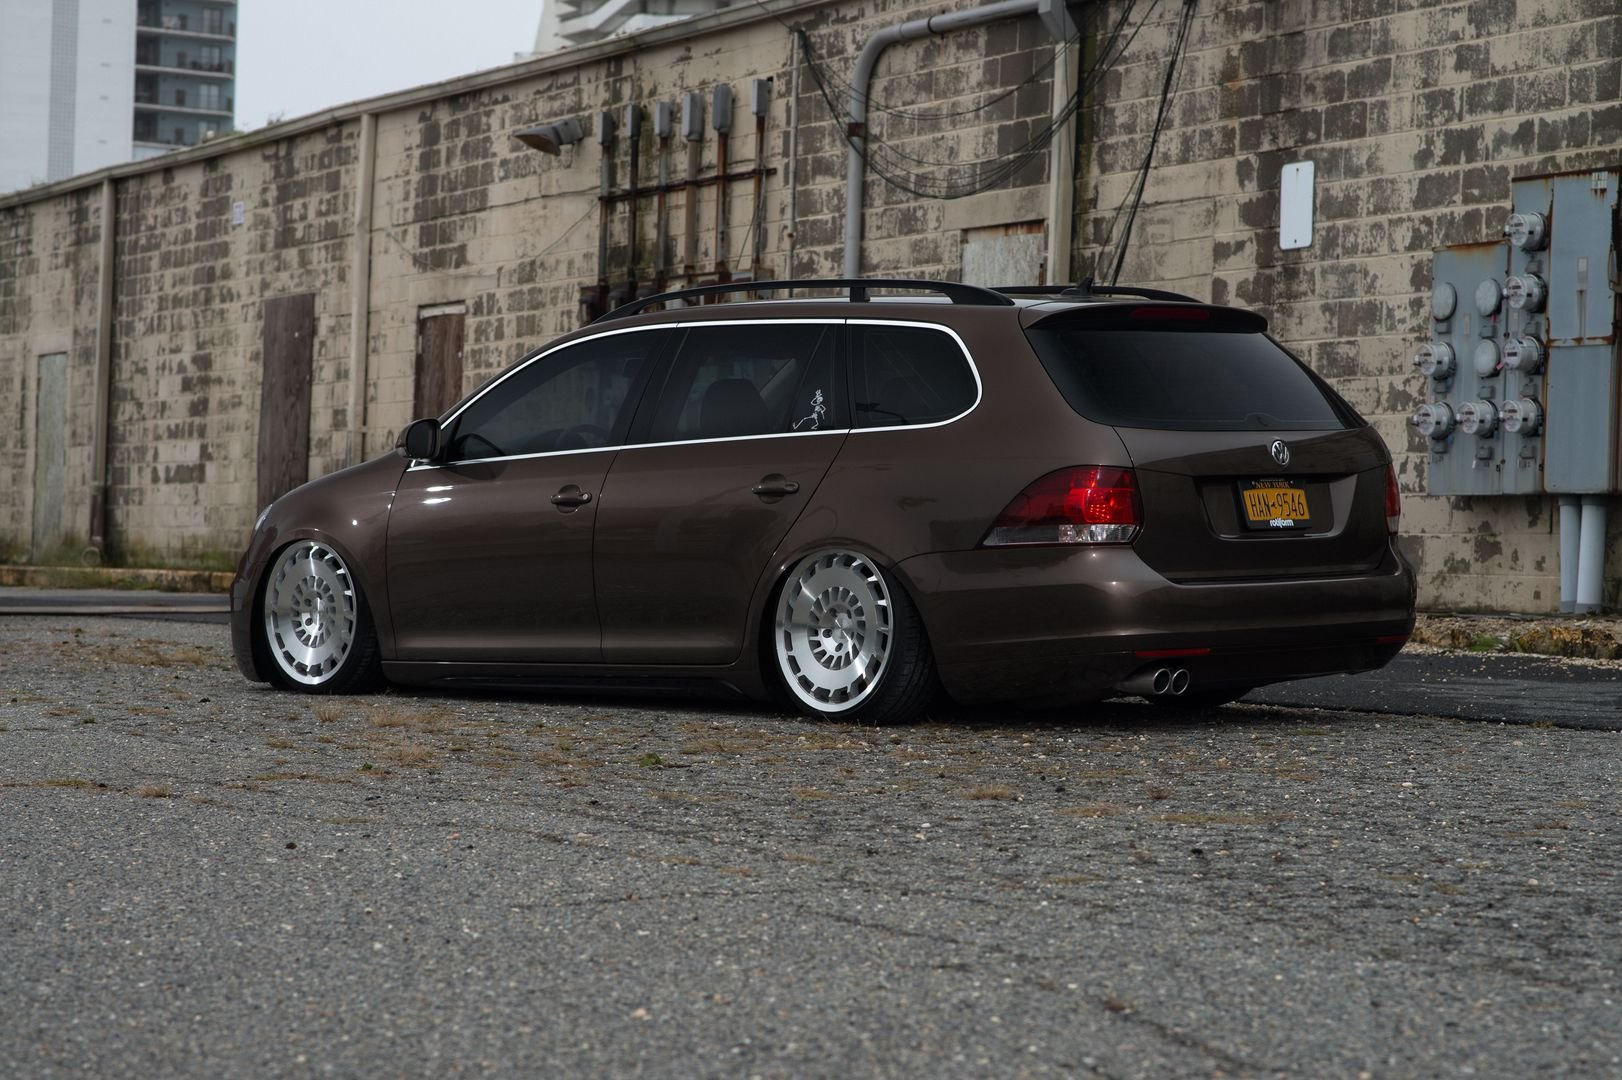 nice and clean lowered vw jetta station wagon fitted with rotiform rims gallery. Black Bedroom Furniture Sets. Home Design Ideas